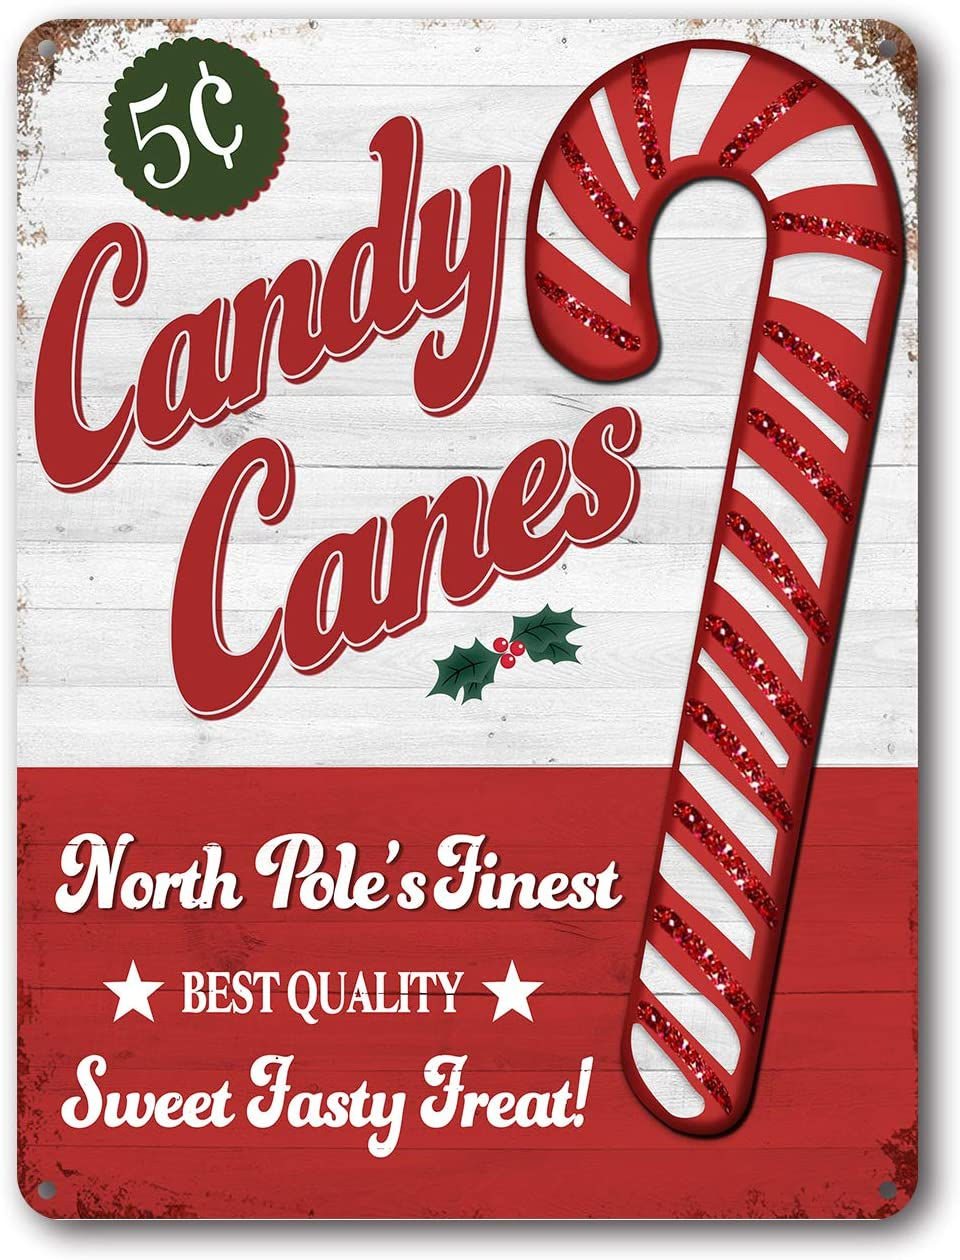 Goutoports Christmas Decor Signs Farmhouse Decorative Red Vintage Wall Decorations - Candy Canes 7.9x11.8 Inch